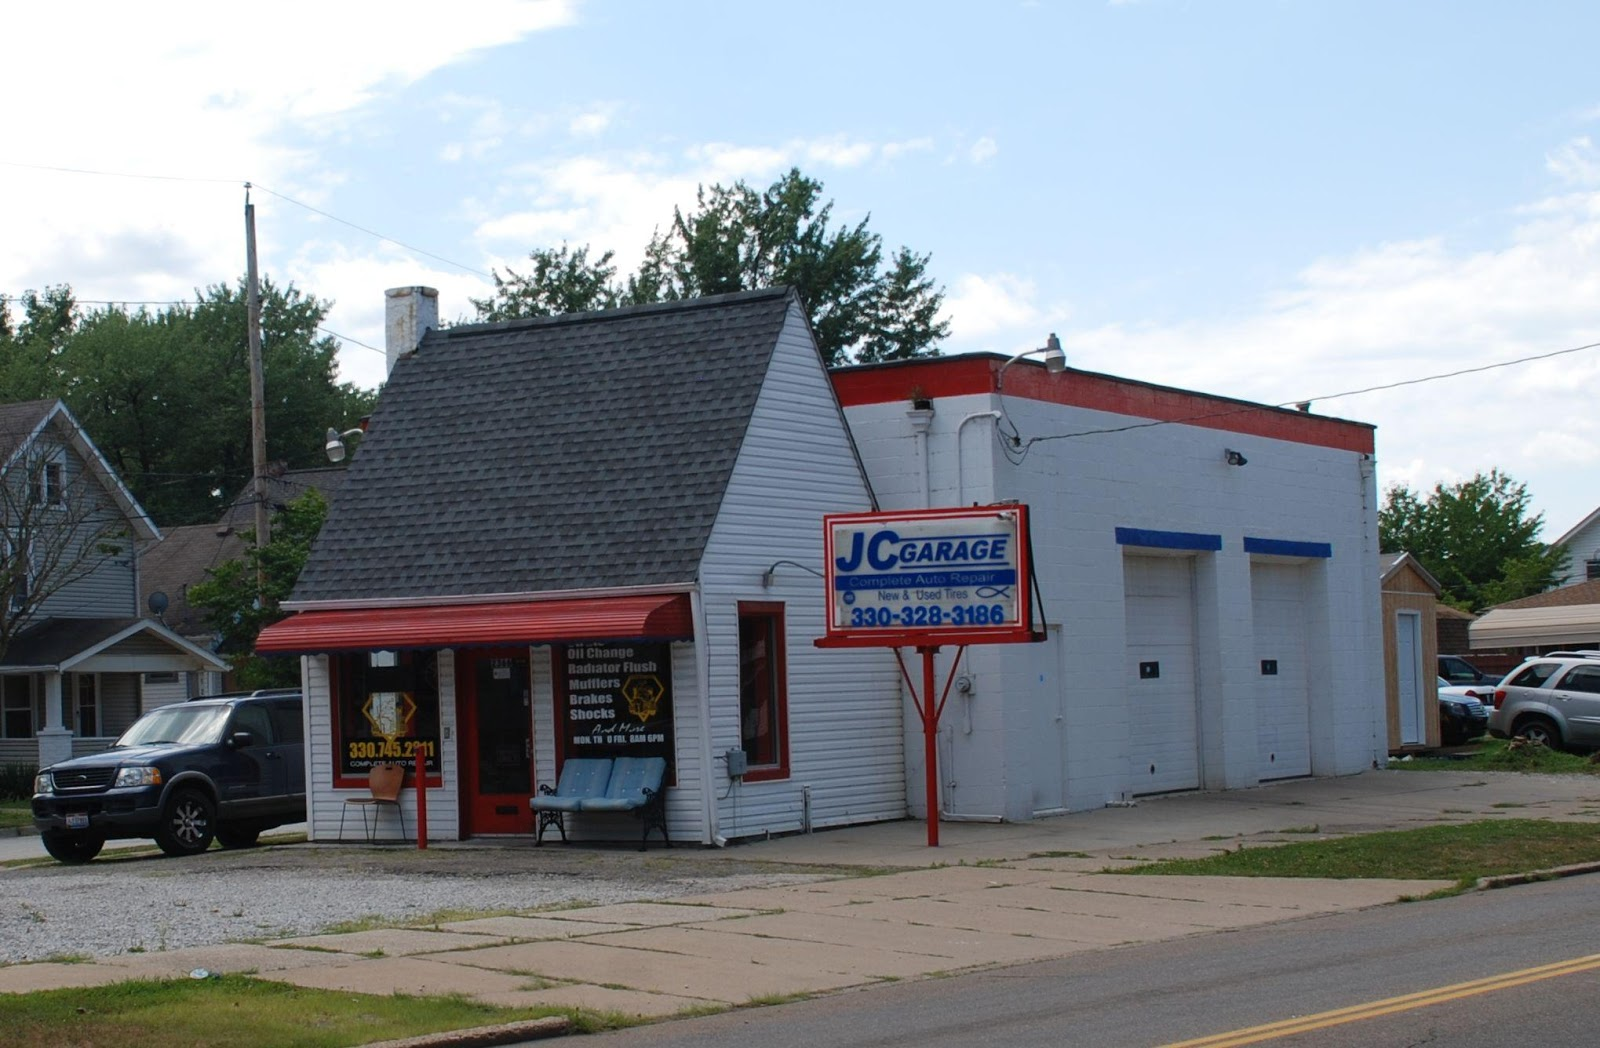 JC Garage located at the triangle intersection of Wilbeth Rd, 27th St and Kentucky Ave. formerly Ramsey's Sunoco Gas Station in the 1940s.